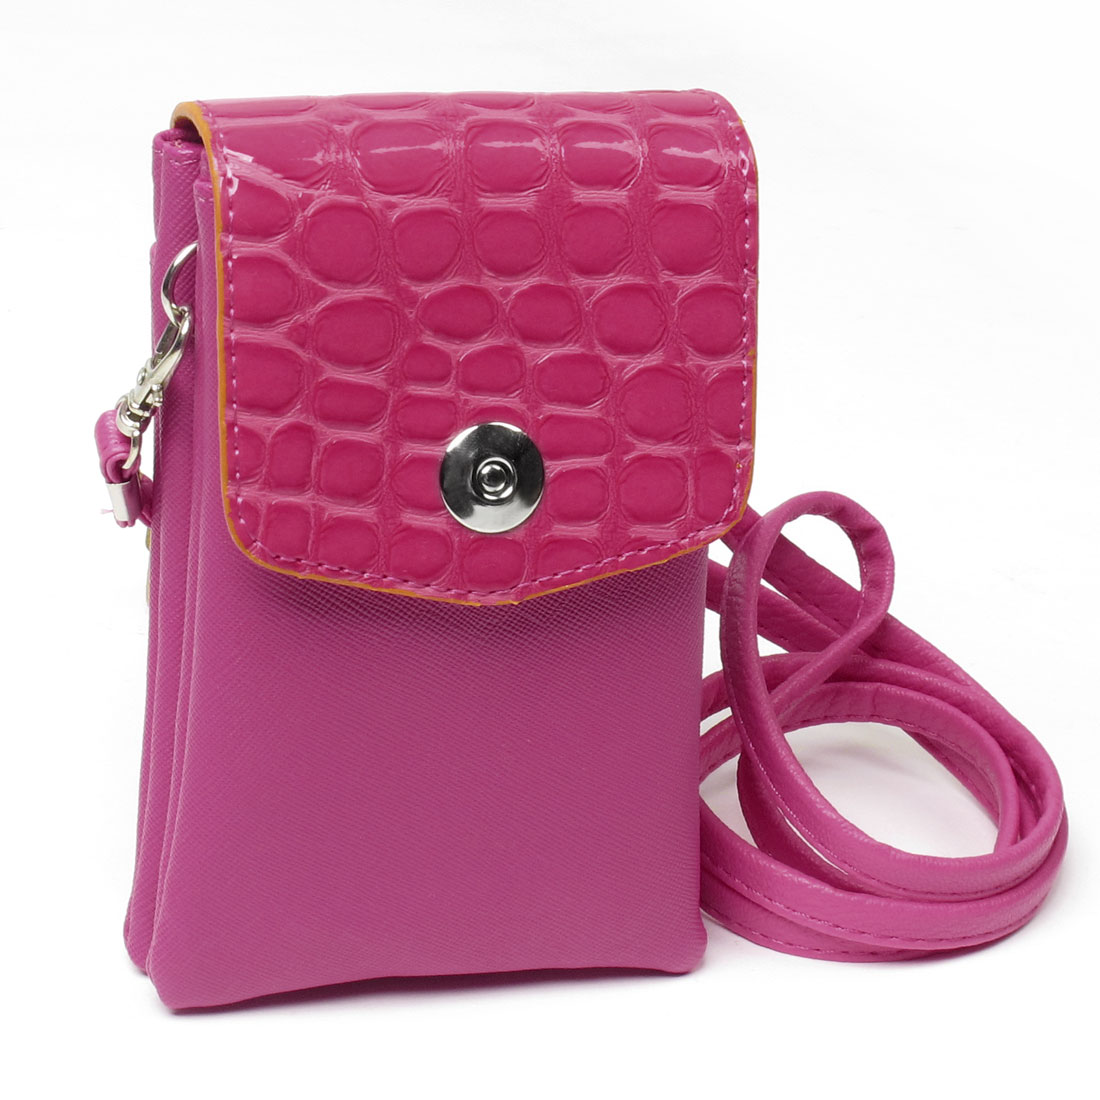 Fuchsia Crocodile Pattern Double Pockets Cell Phone Bag